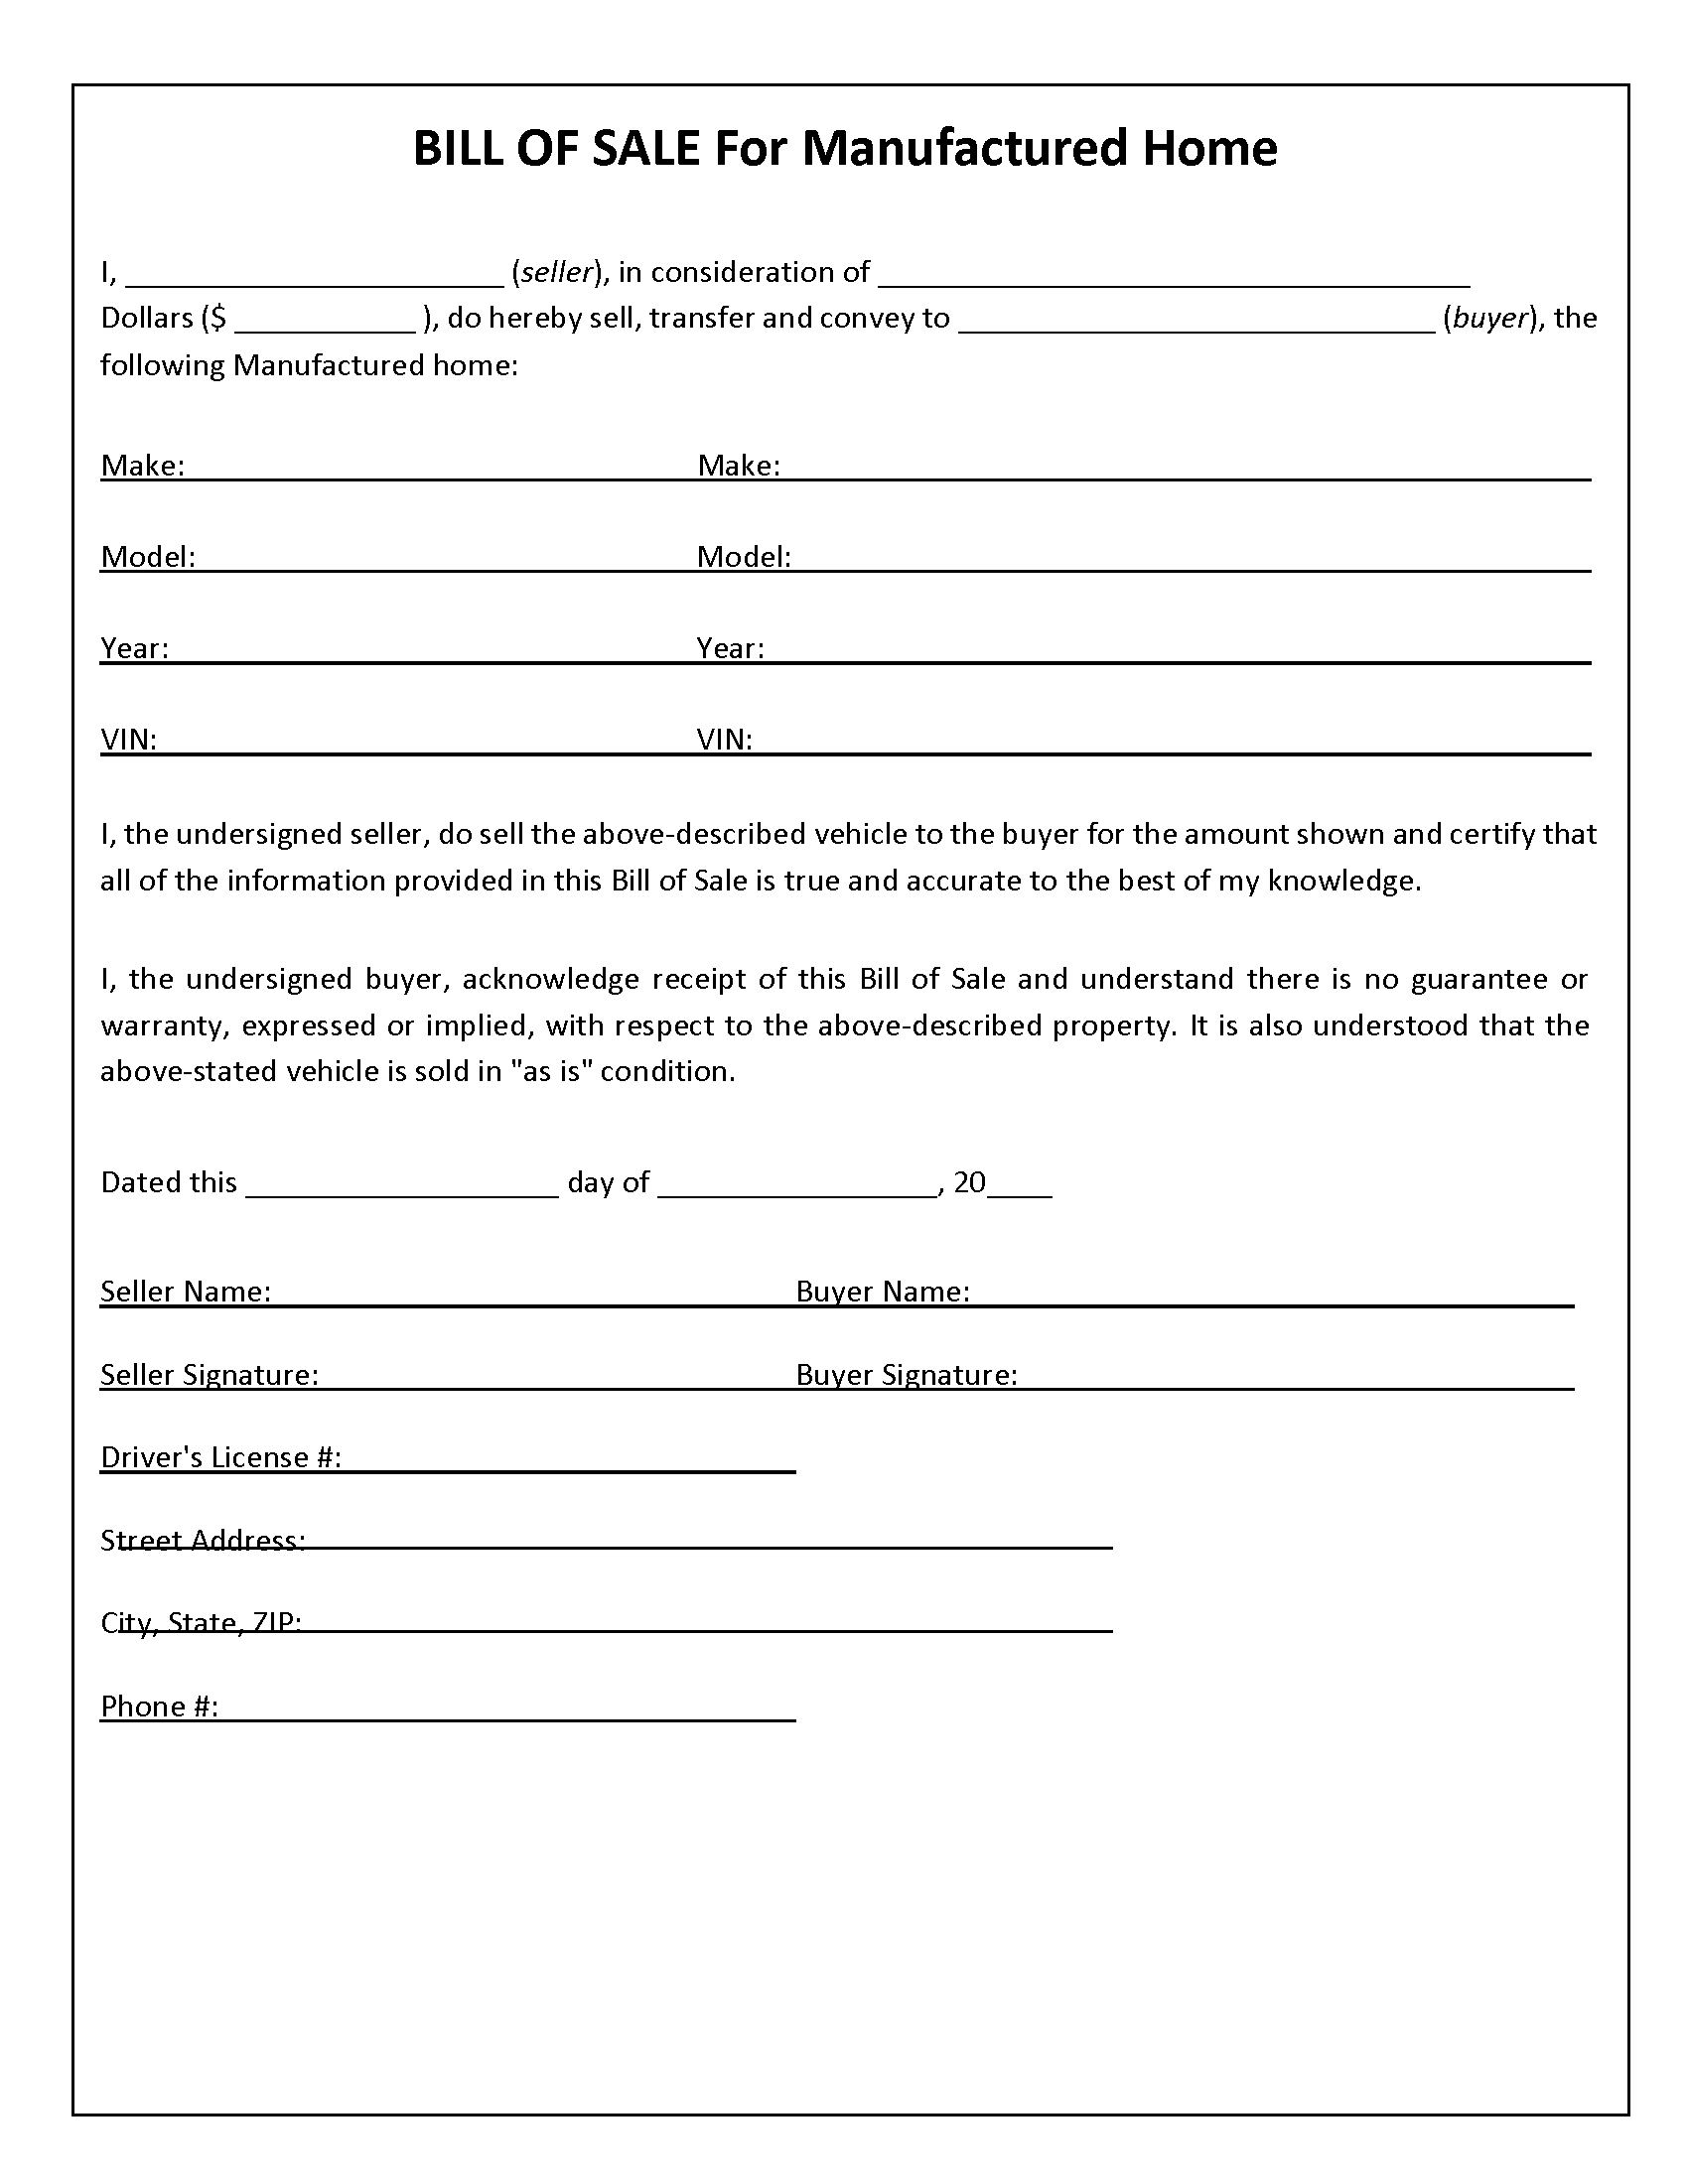 Mobile Home Bill of Sale Form